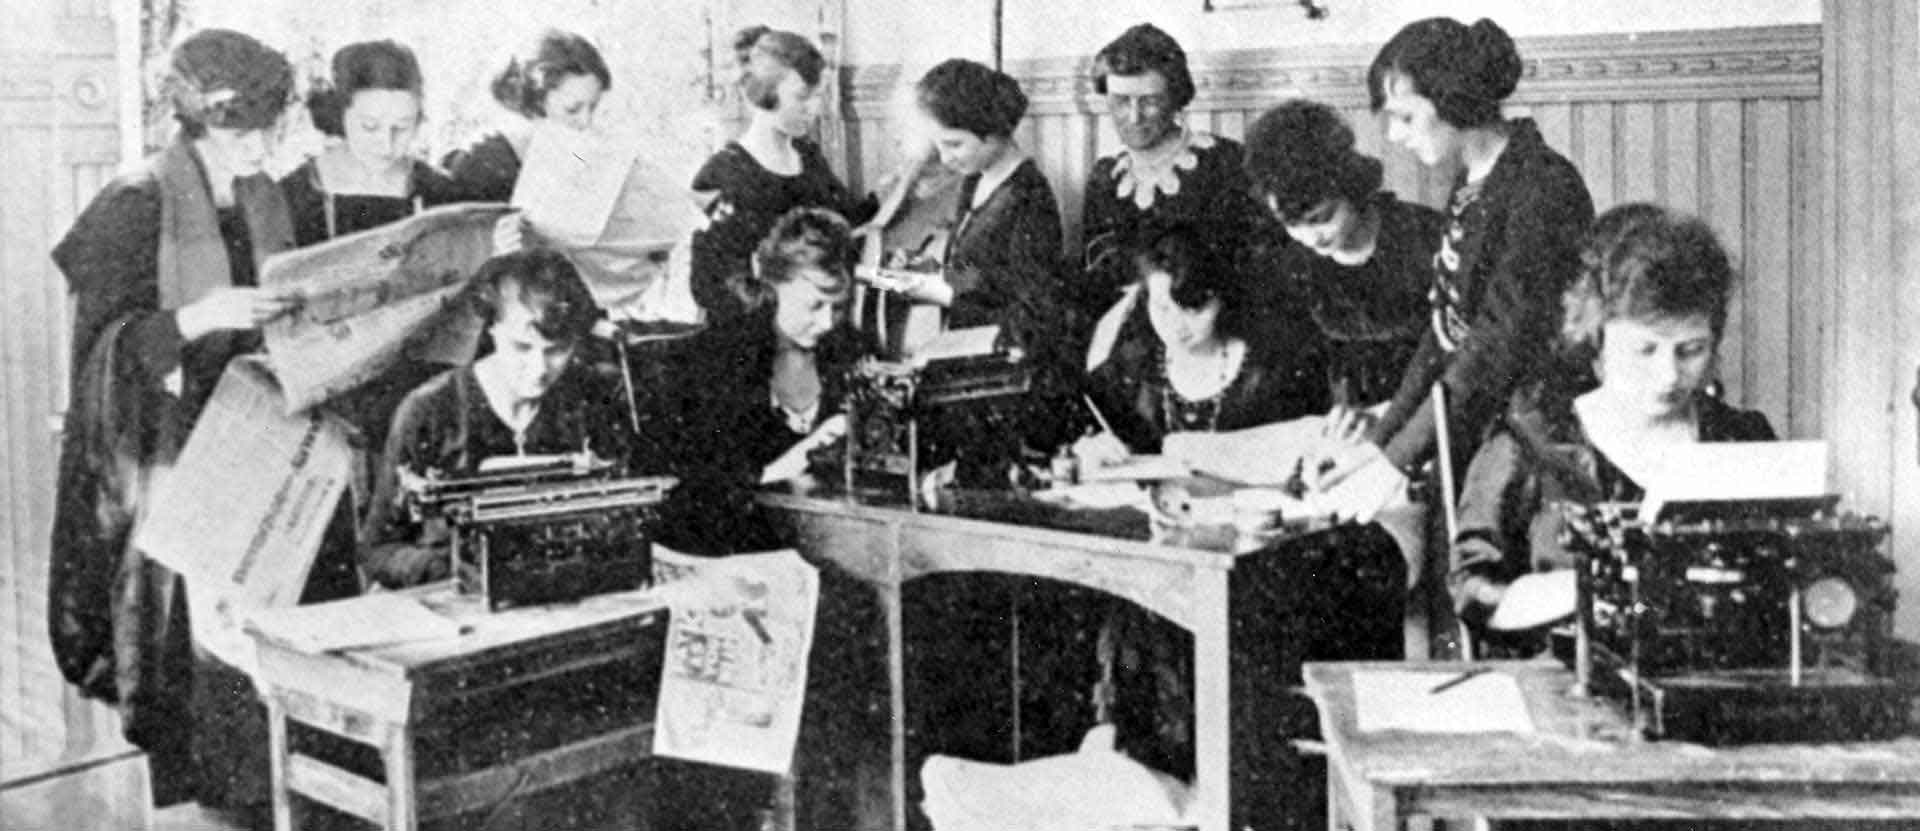 Wesleyan College students work on typewriters for the college newspaper.